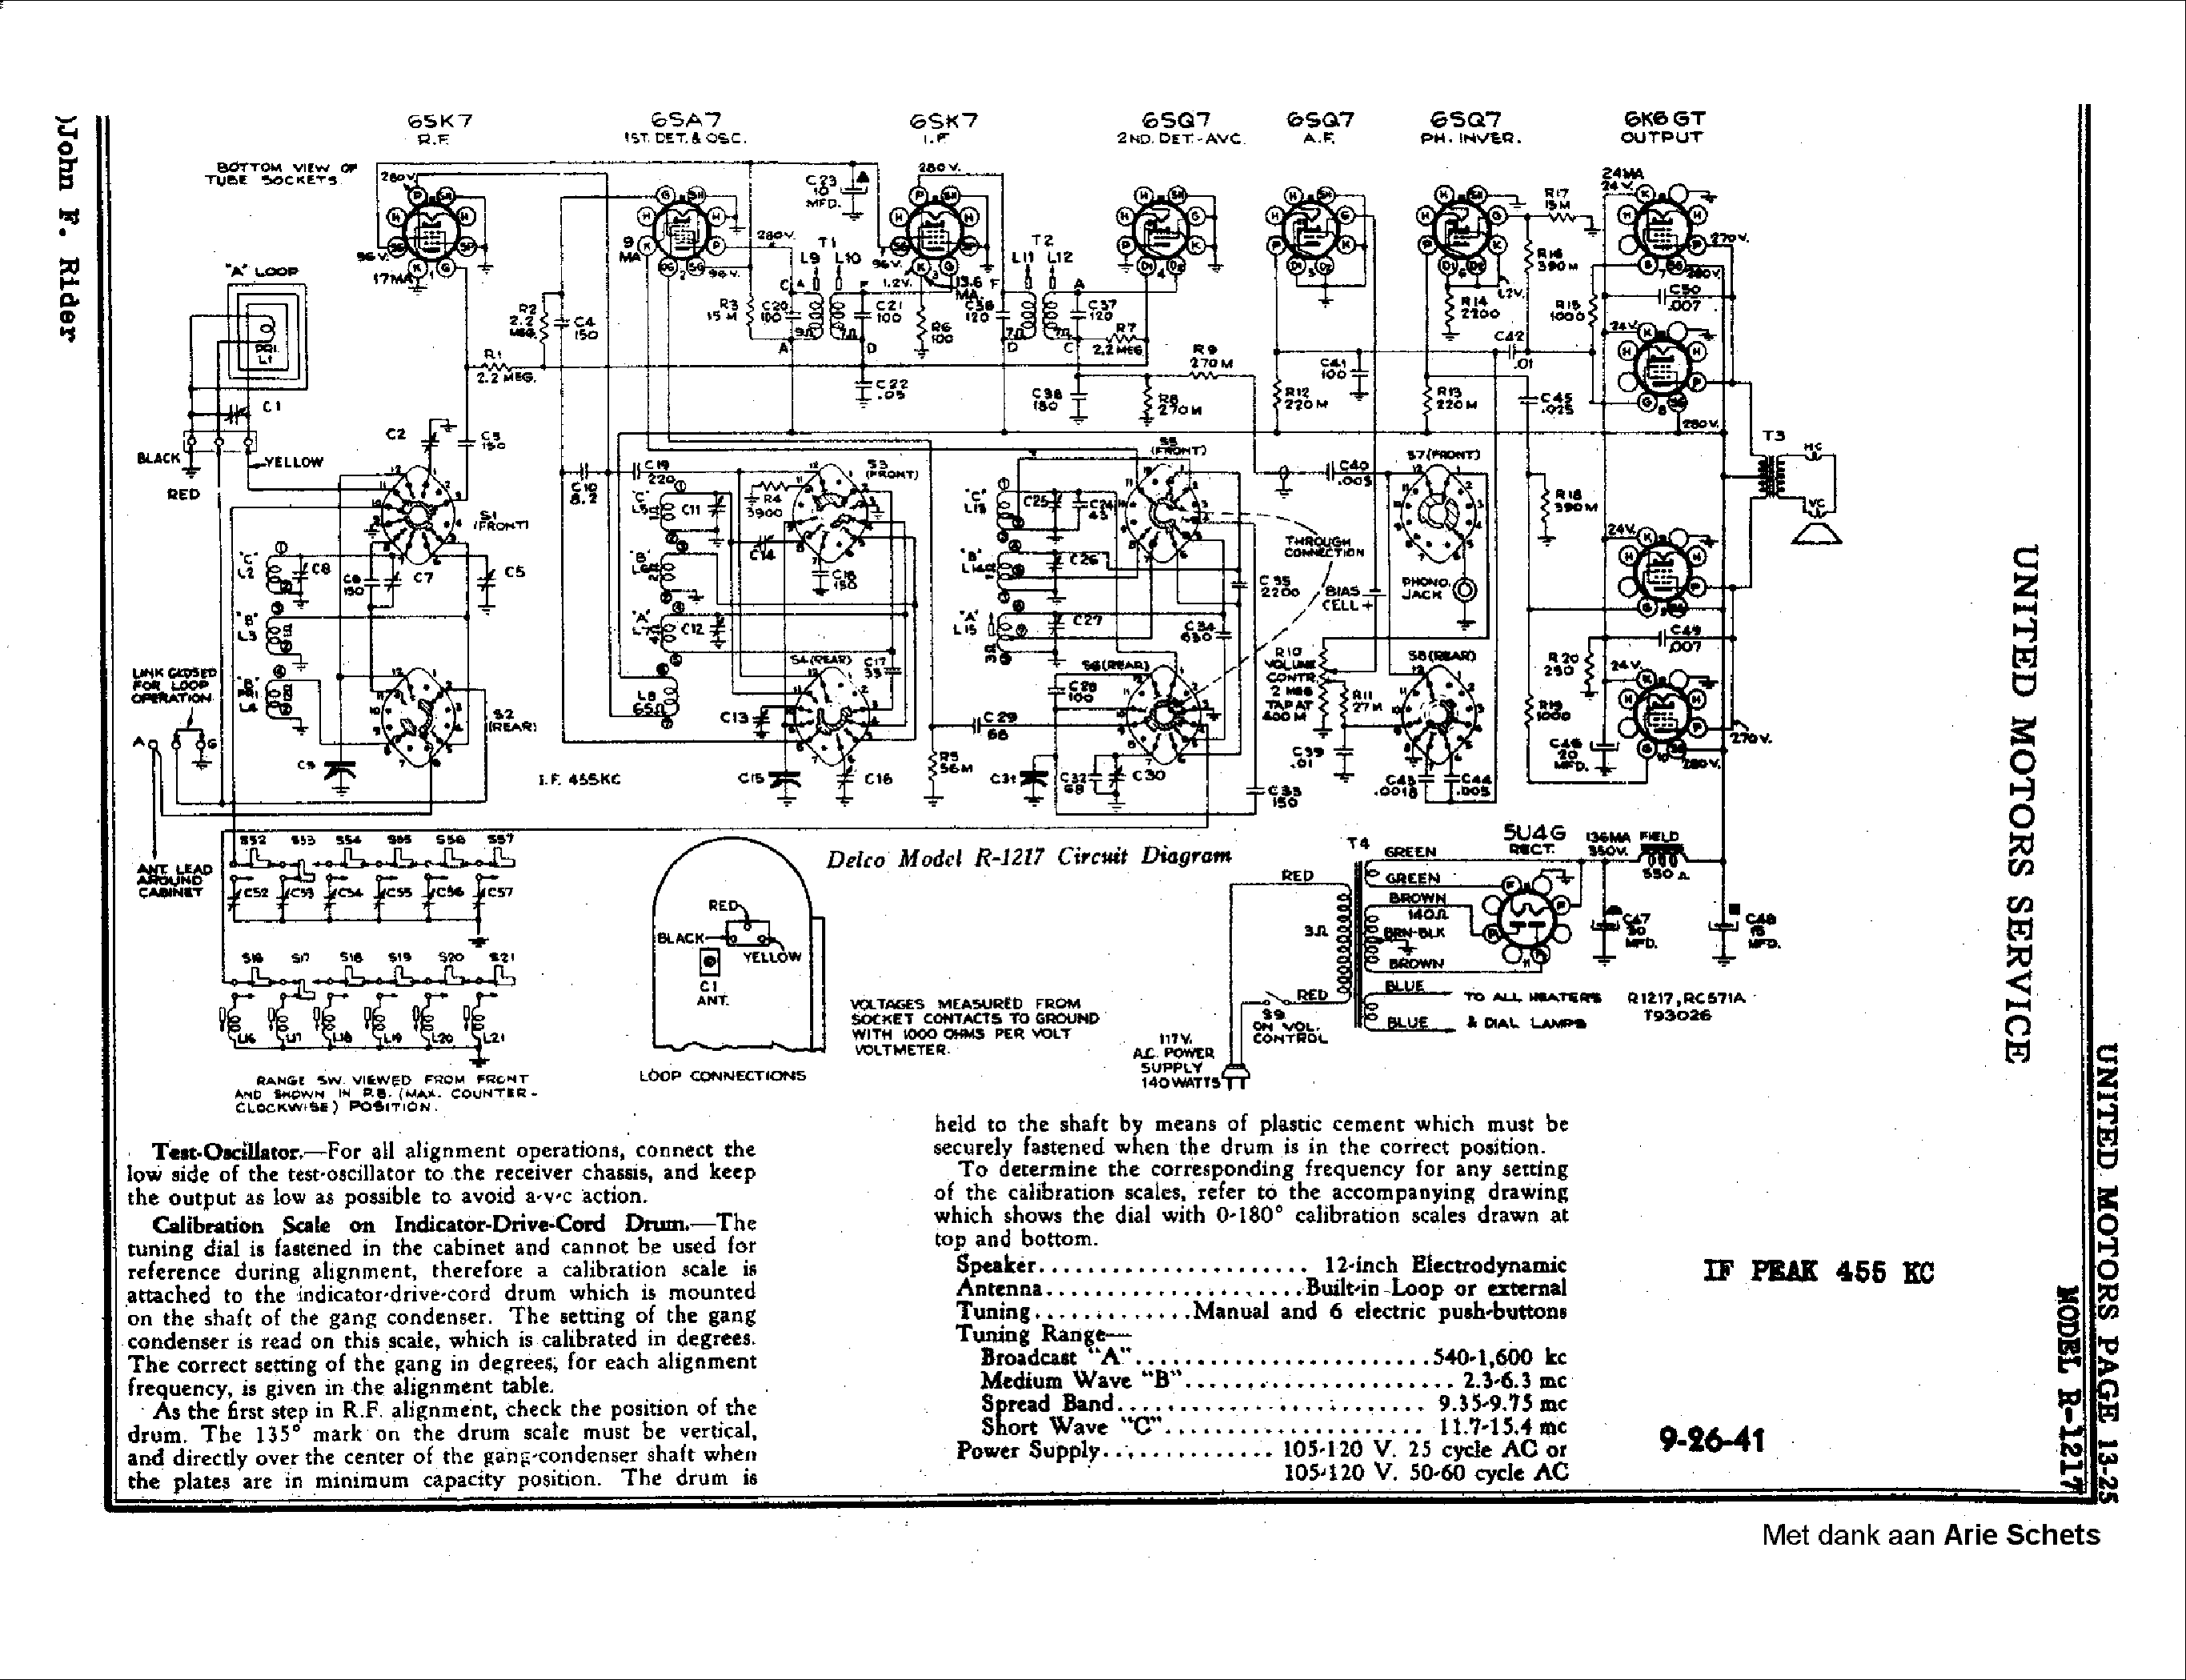 delco r1217 radio 1941 sch service manual download schematics rh elektrotanya com Delco Car Radio Schematics Delco Radio Pinout